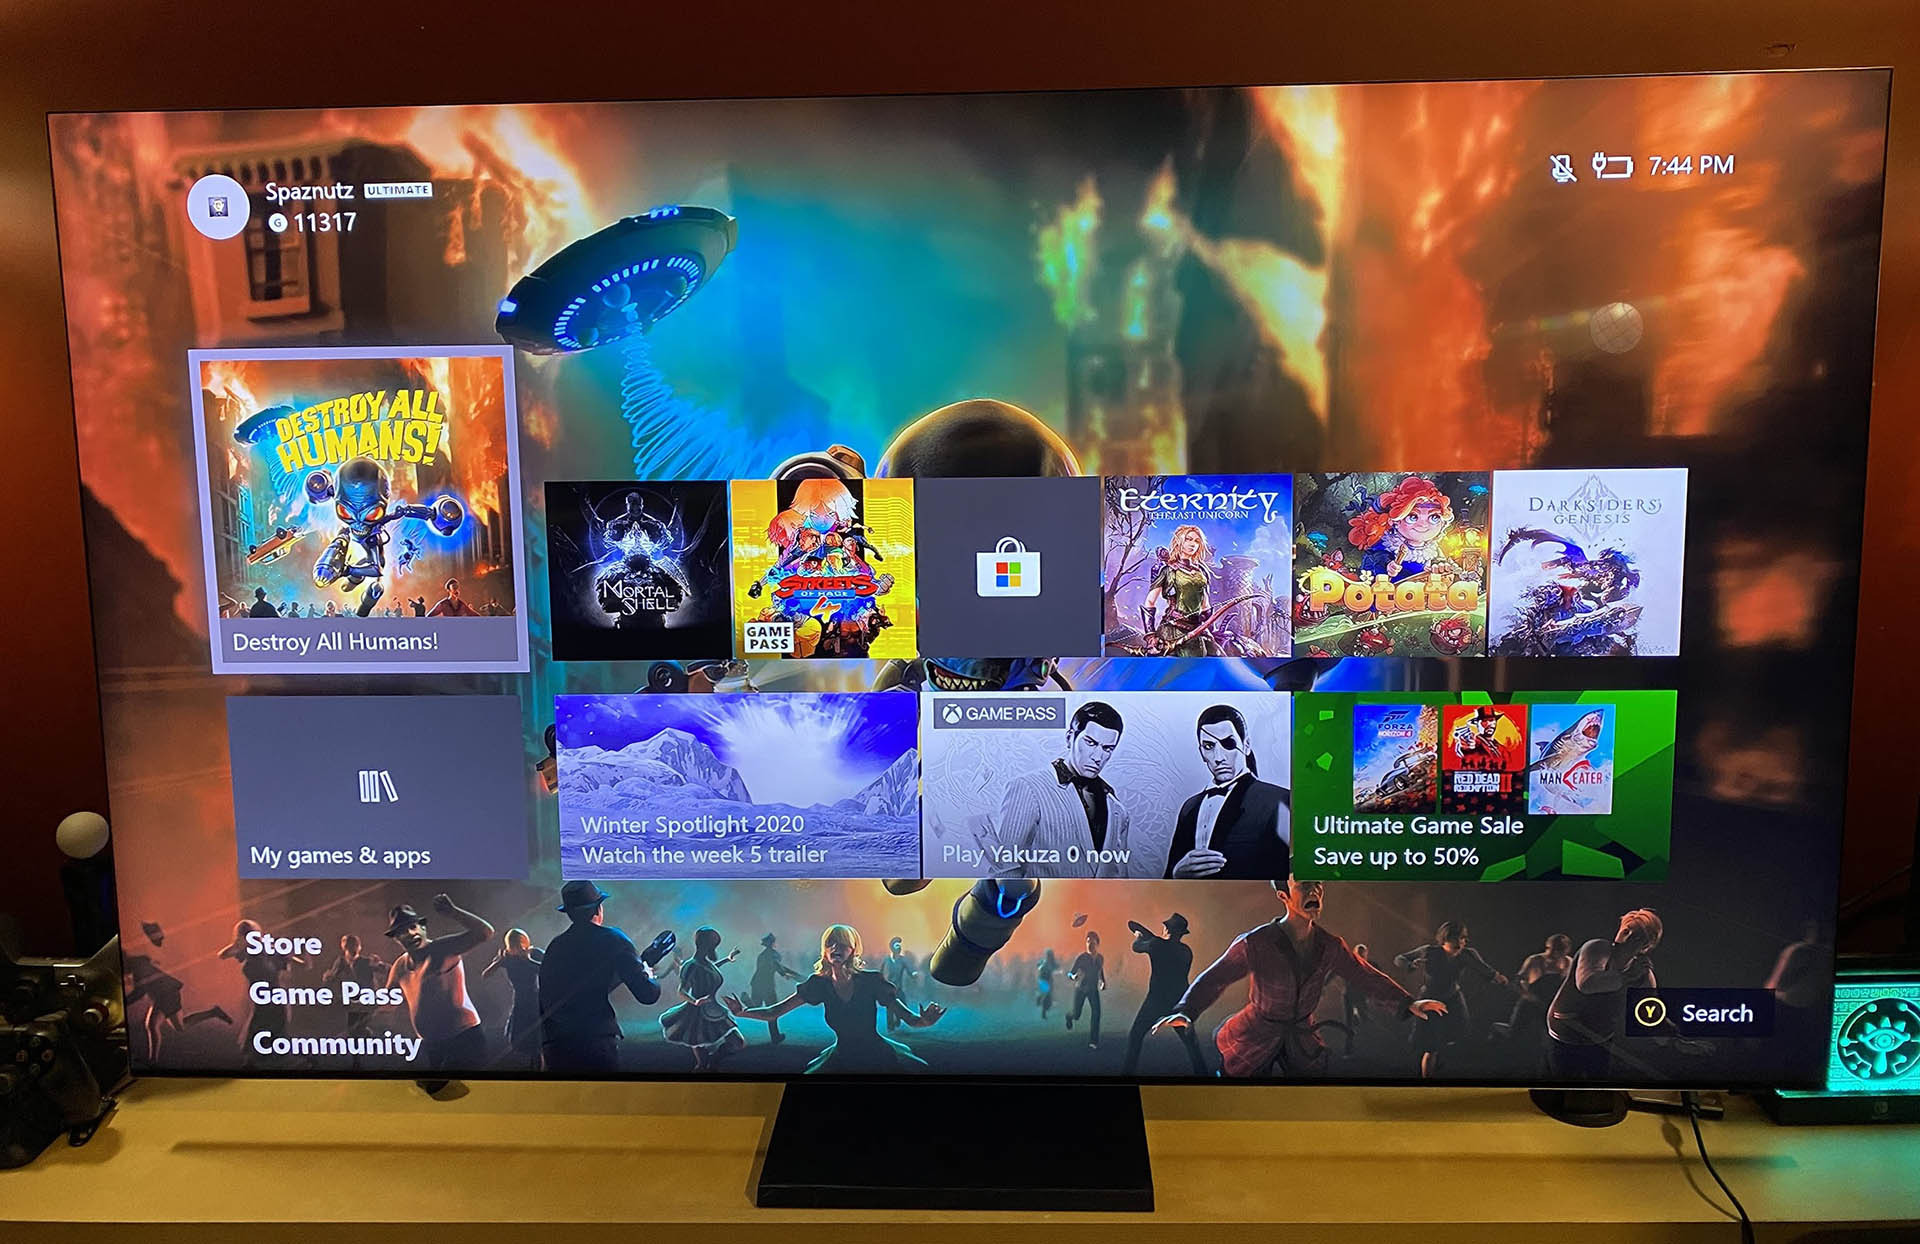 Samsung QLED 8K 65 inch Q950TS Smart TV (2020)